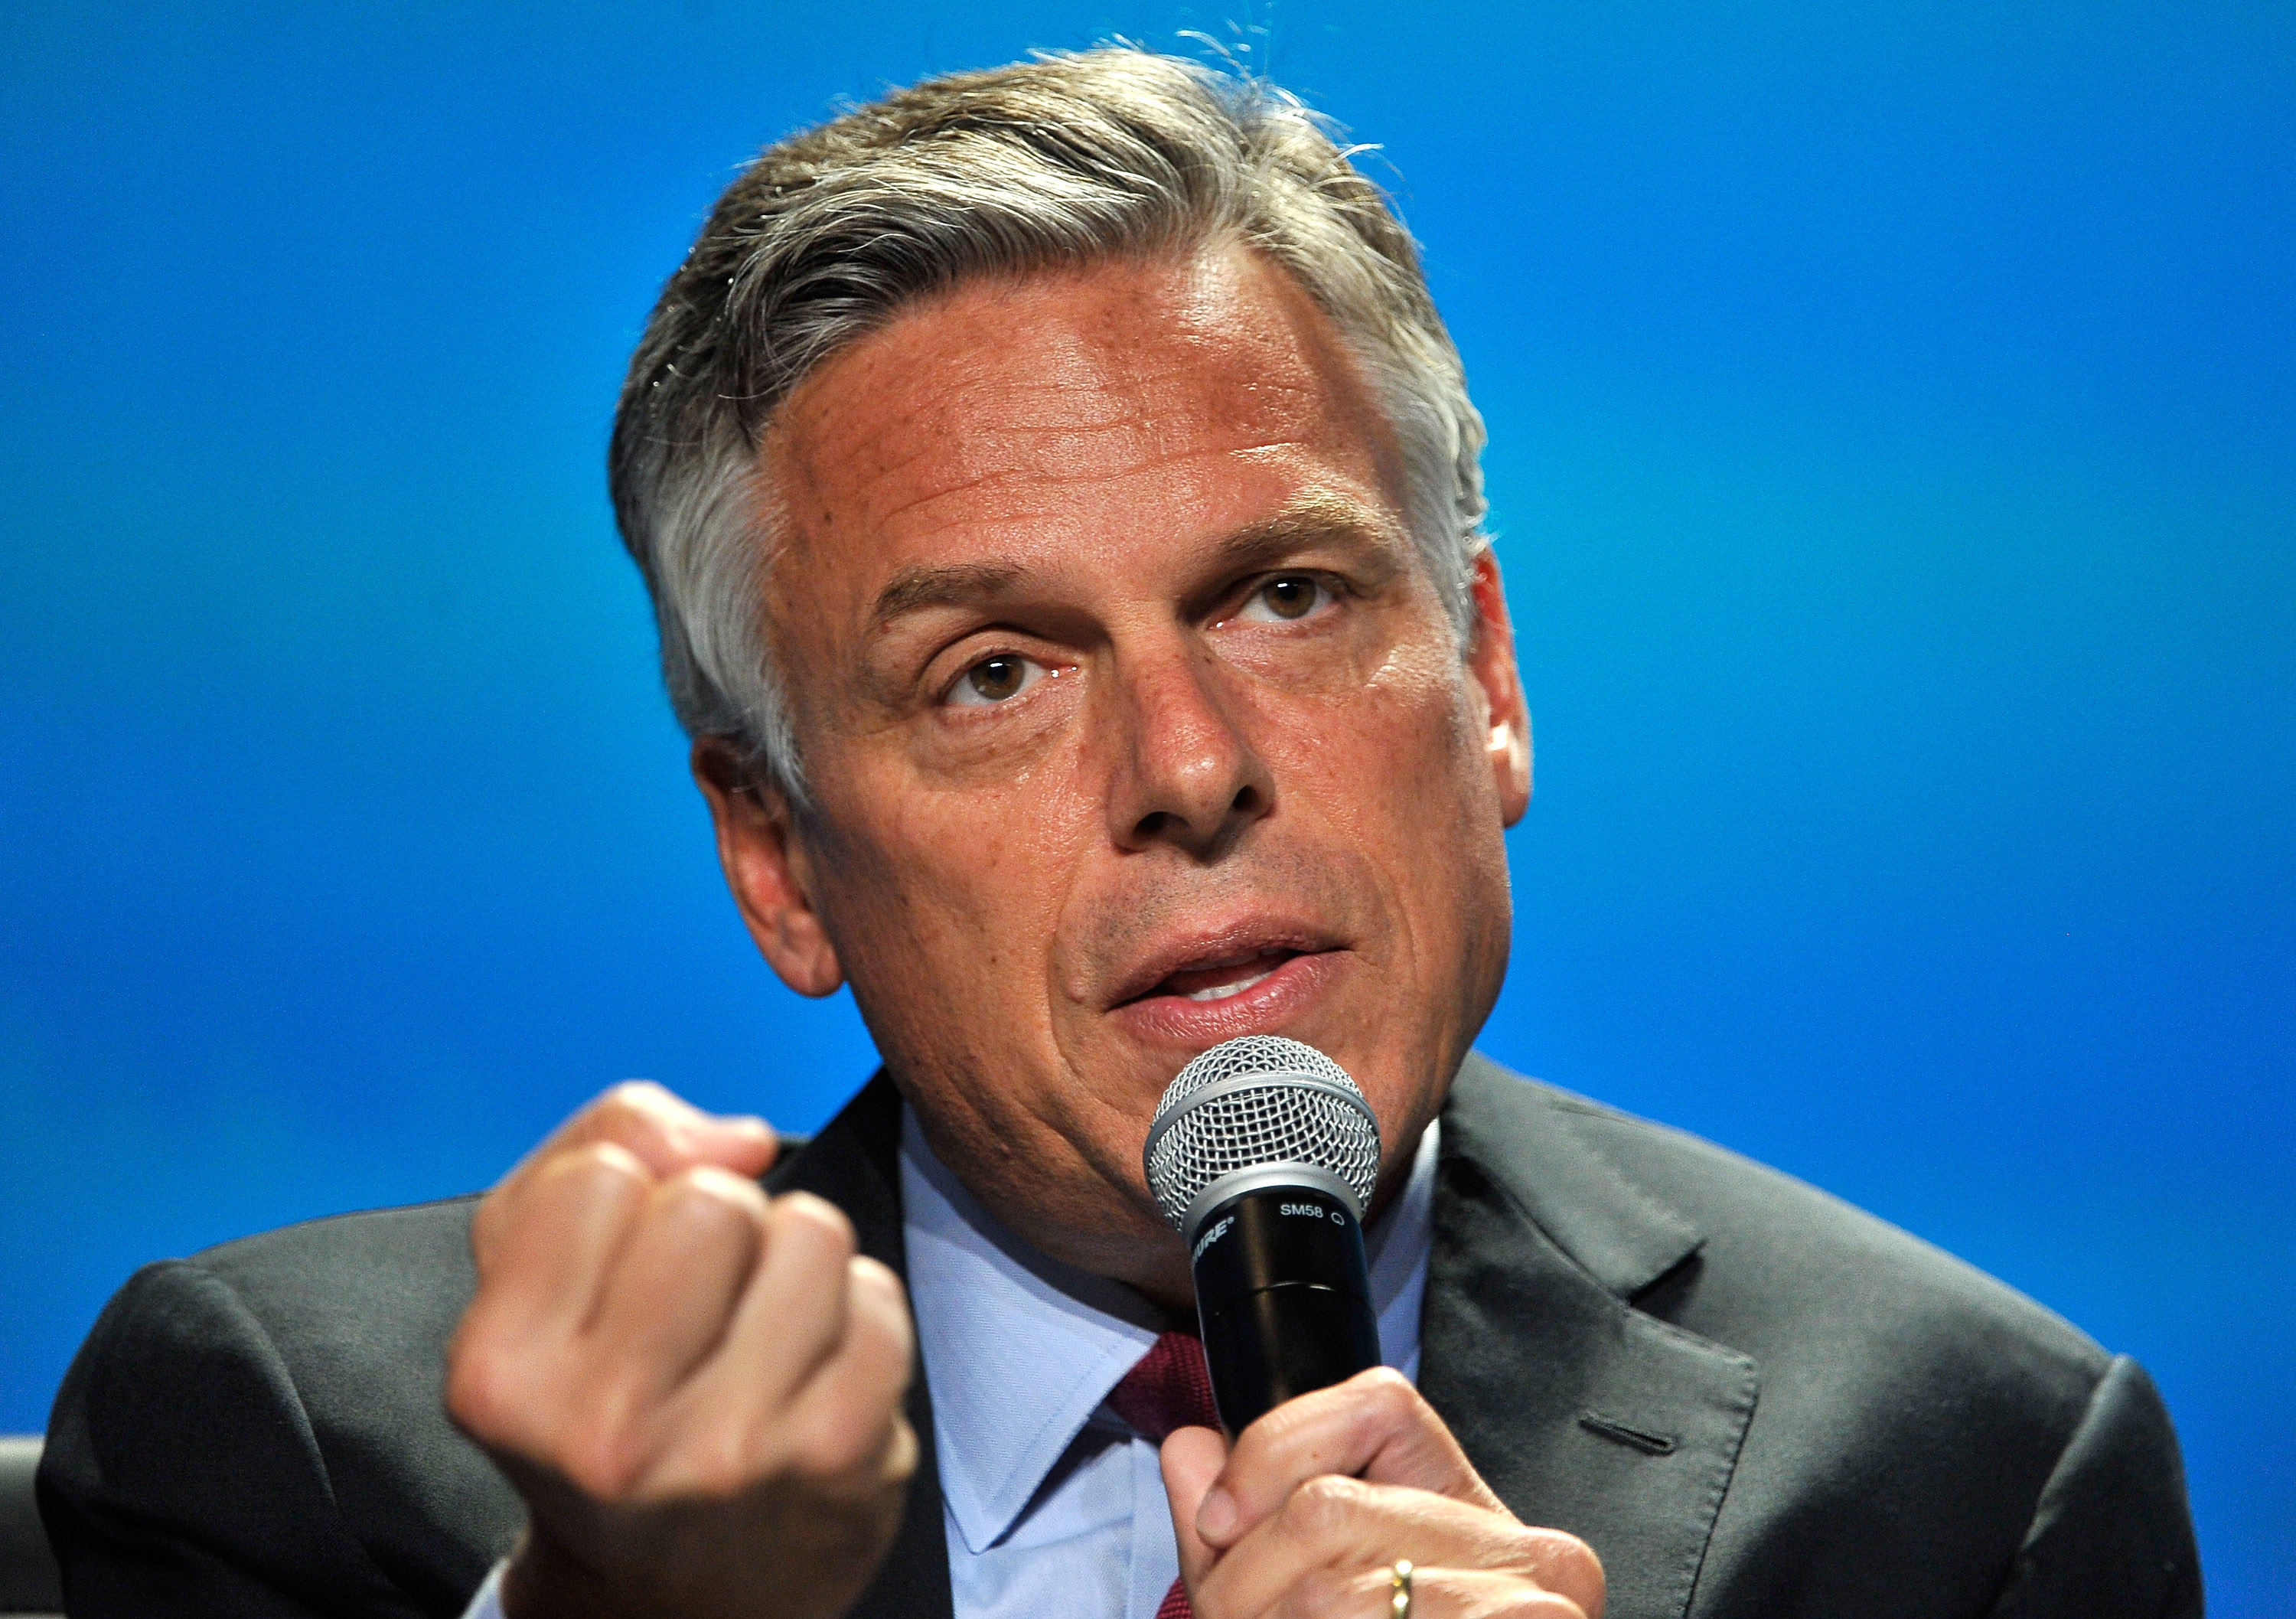 Former Utah Gov. Jon Huntsman Jr. speaks at the National Clean Energy Summit 7.0 at the Mandalay Bay Convention Center in Las Vegas on Sept. 4, 2014.